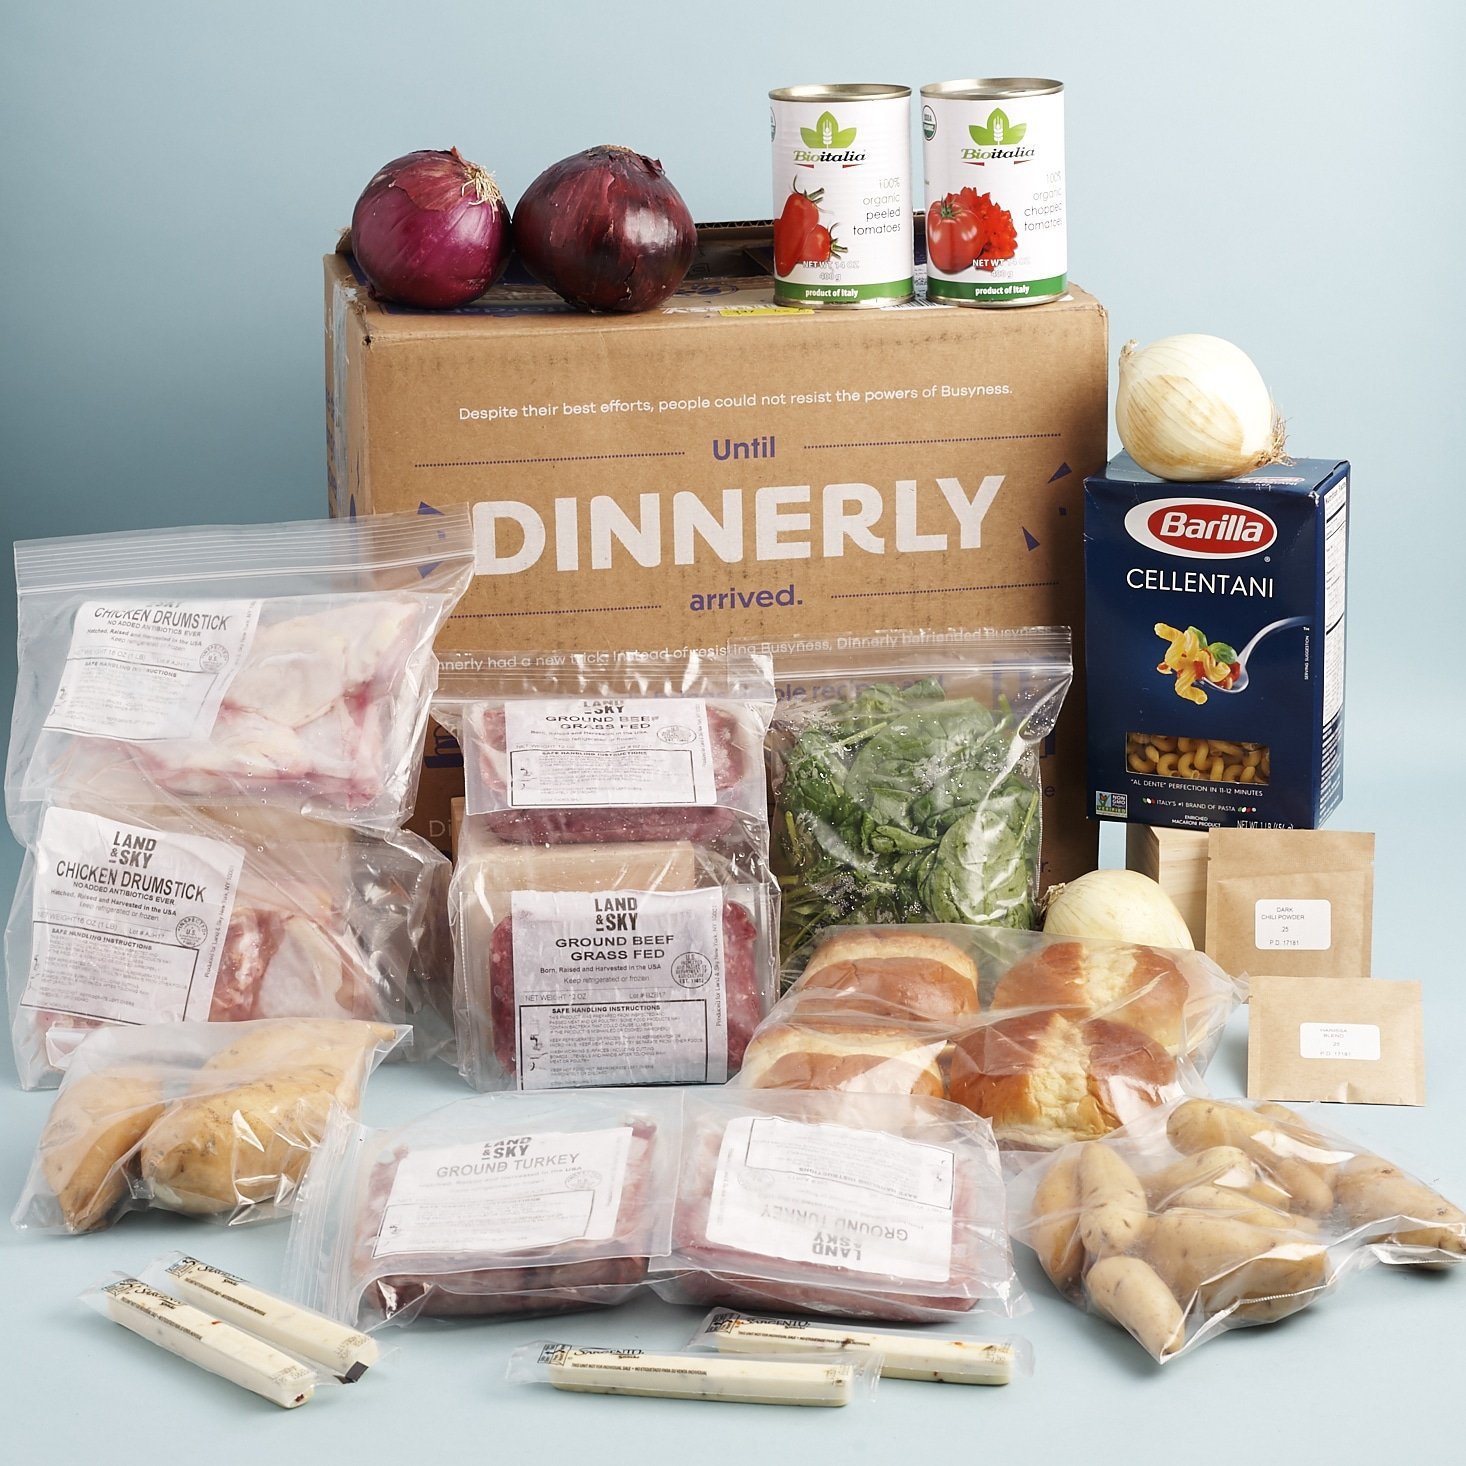 Dinnerly 4th of July Coupon – Save $60 Off Your First Four Boxes!